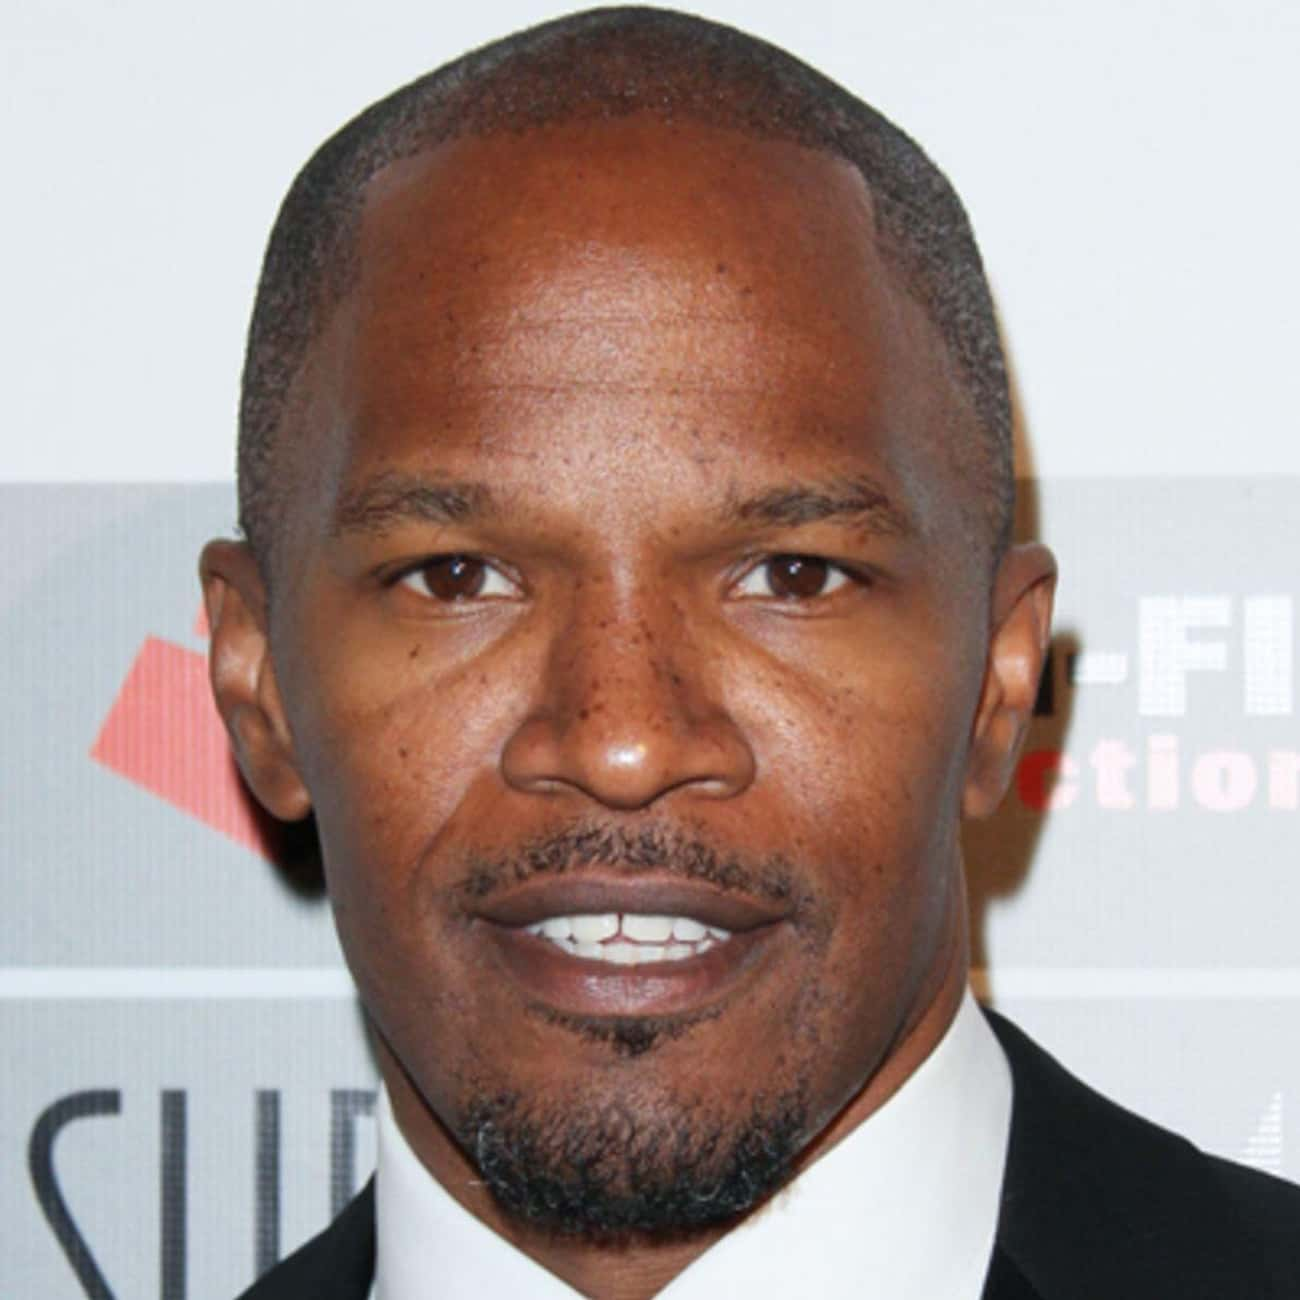 Jamie Foxx Was Born Eric Morlo is listed (or ranked) 3 on the list 12 Surprising Stories Behind Famous Stage Names